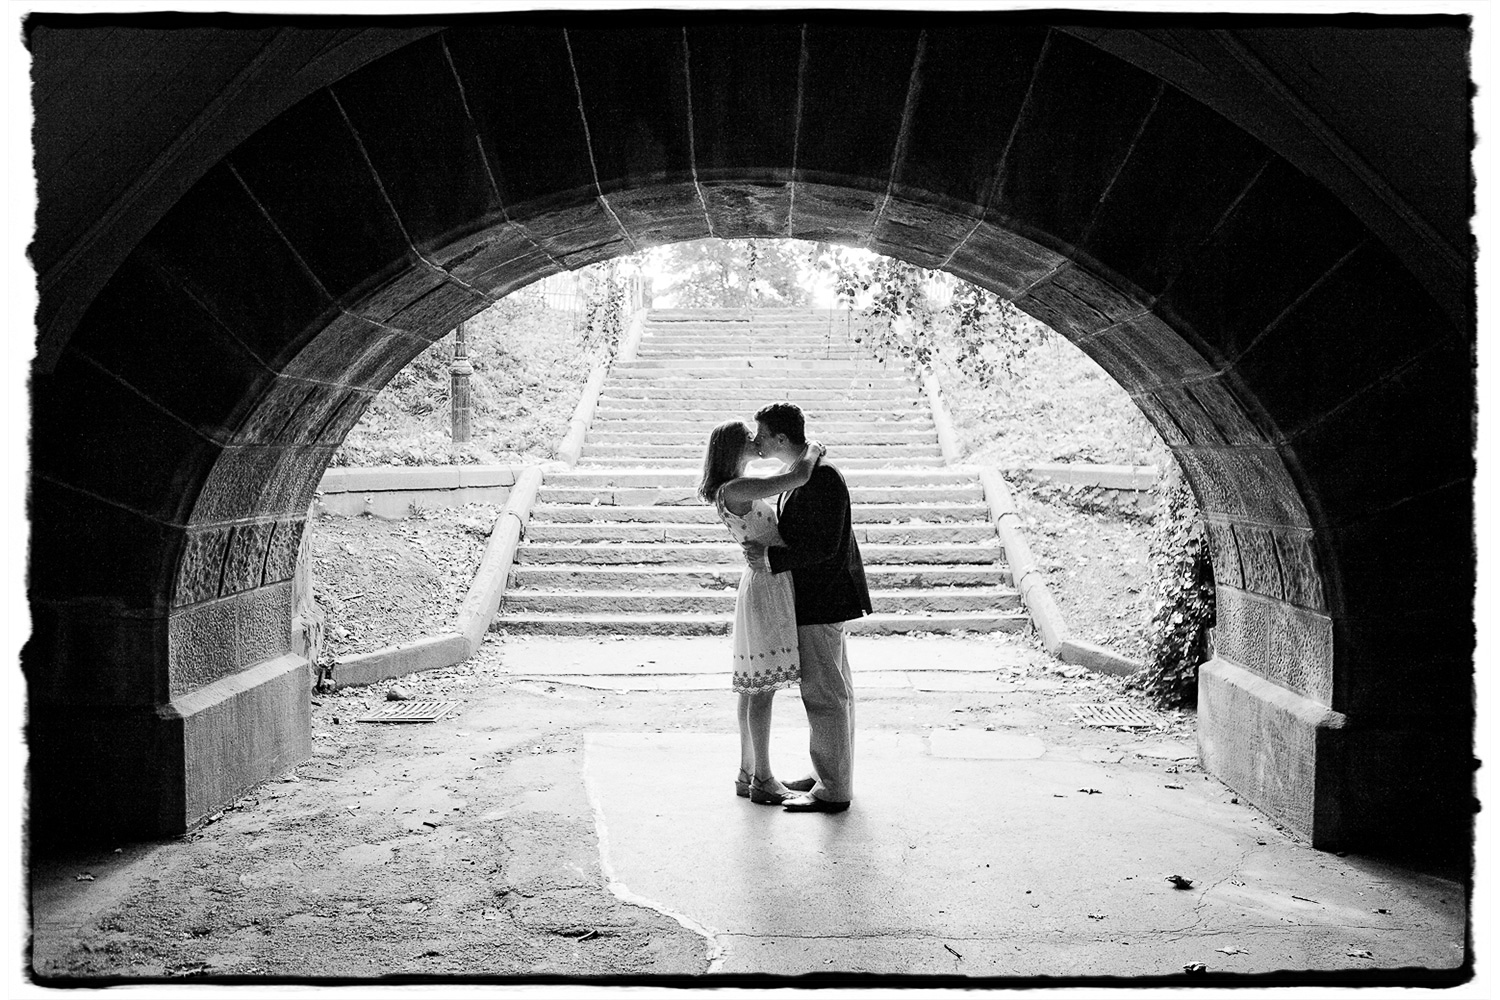 Engagement Portraits: a kiss is framed nicely in a tunnel at Central Park.